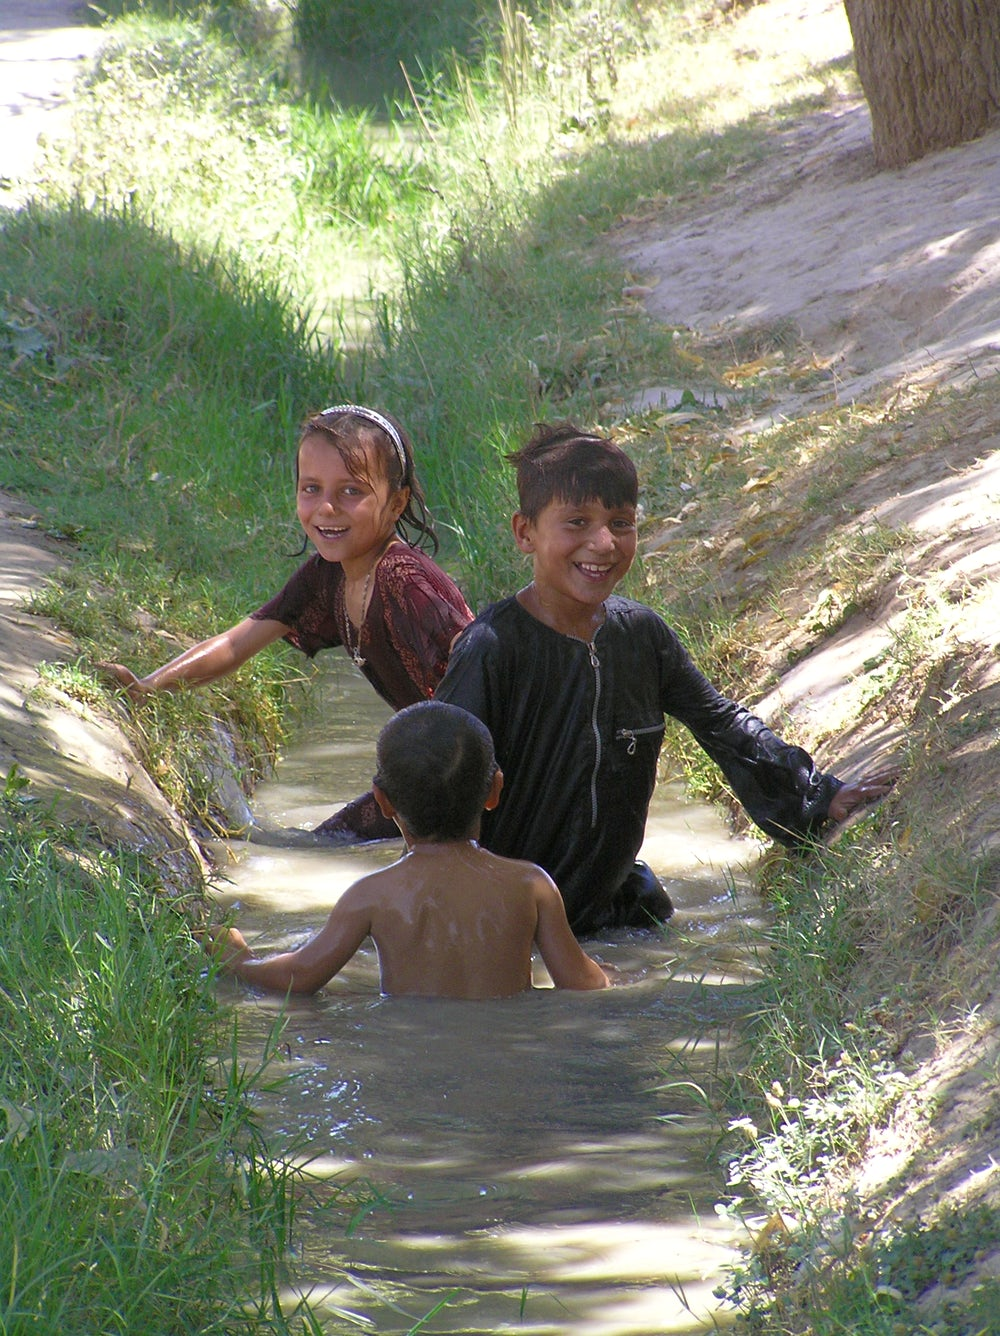 Children frolic and cool off in an irrigation canal on a blistering hot day in Balkh Province in a village outside of Mazar e Sharif.